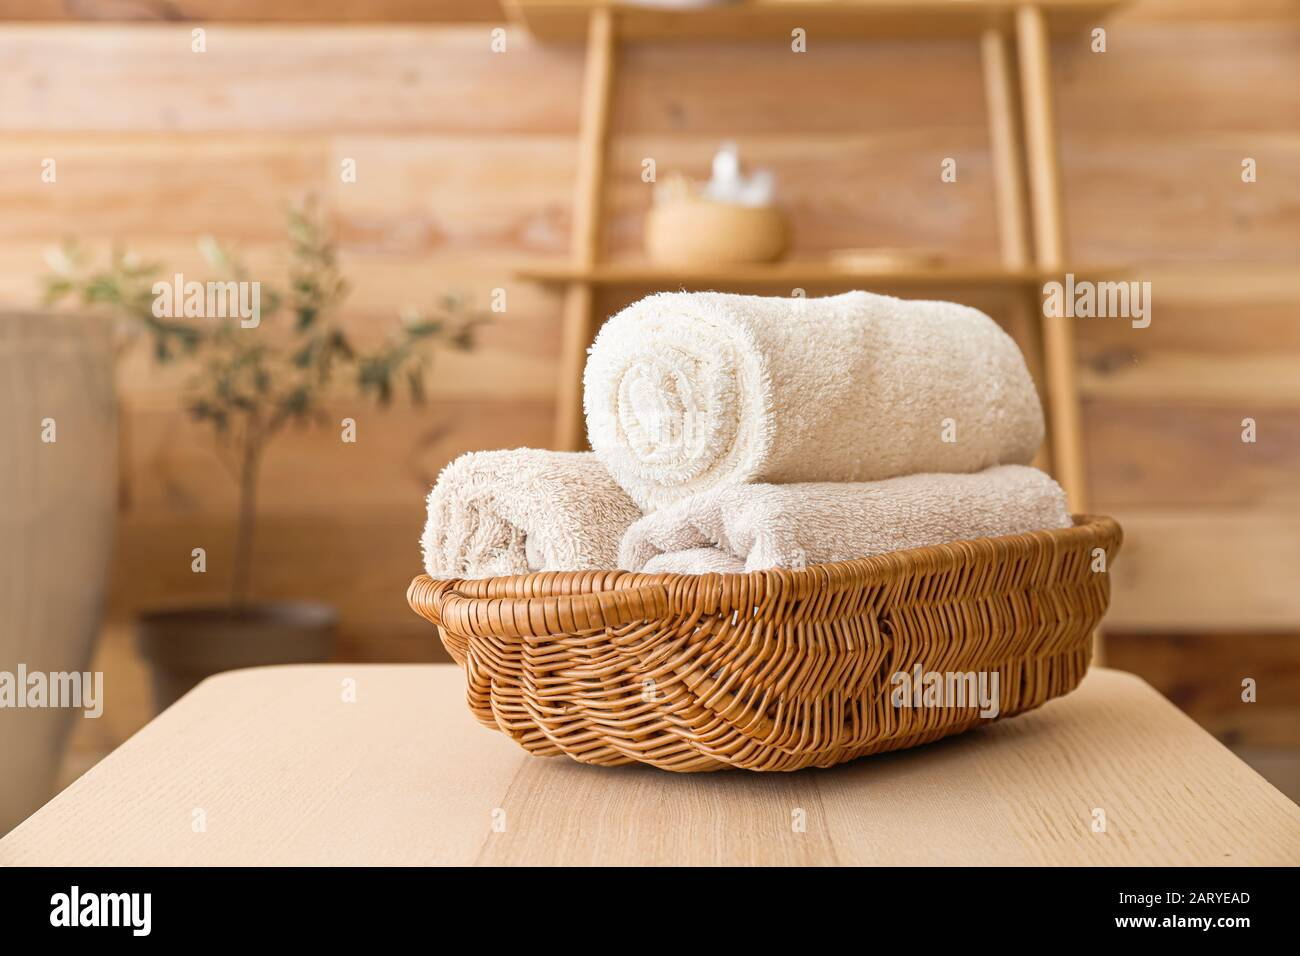 Basket With Clean Towels On Table In Bathroom Stock Photo Alamy